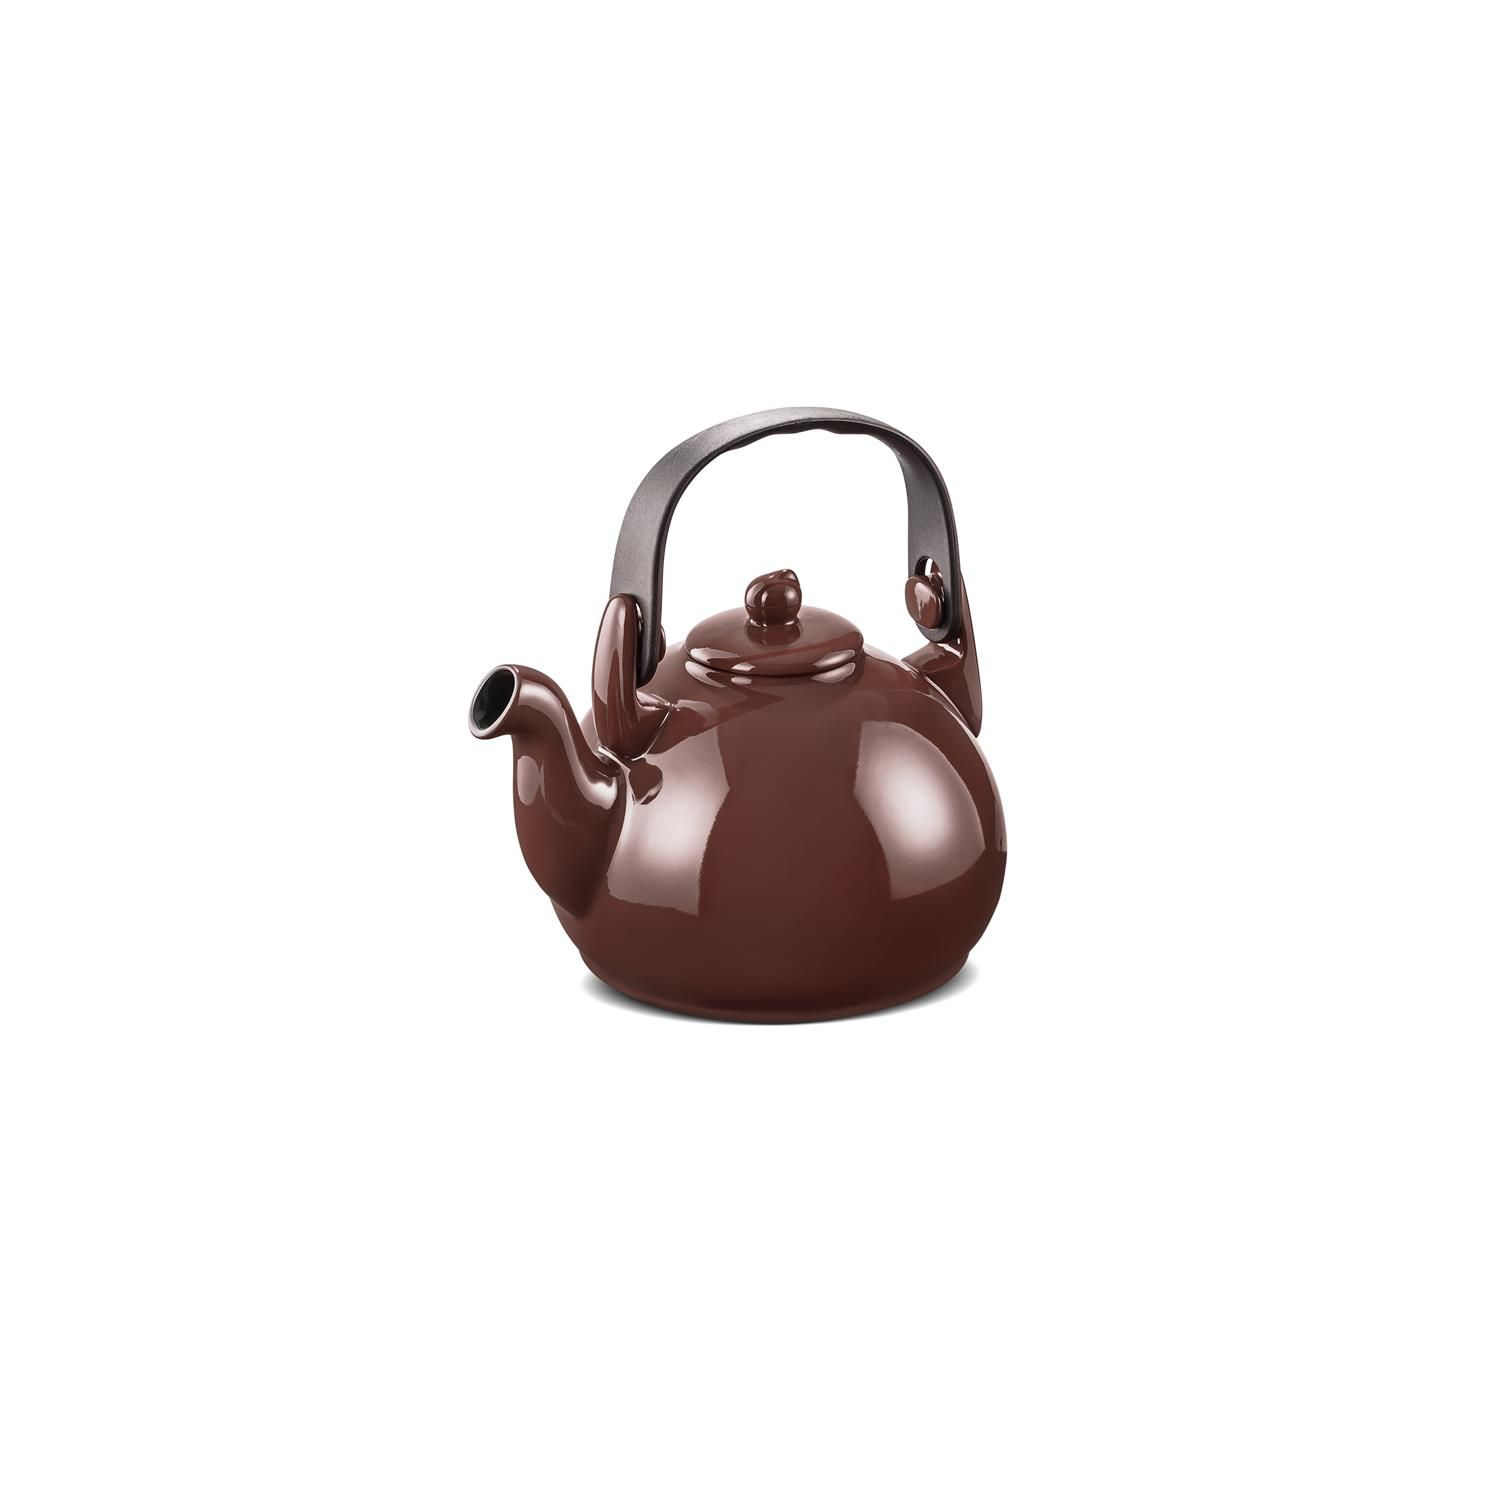 Chaleira De Cerâmica Ceraflame Colonial 1700Ml Chocolate